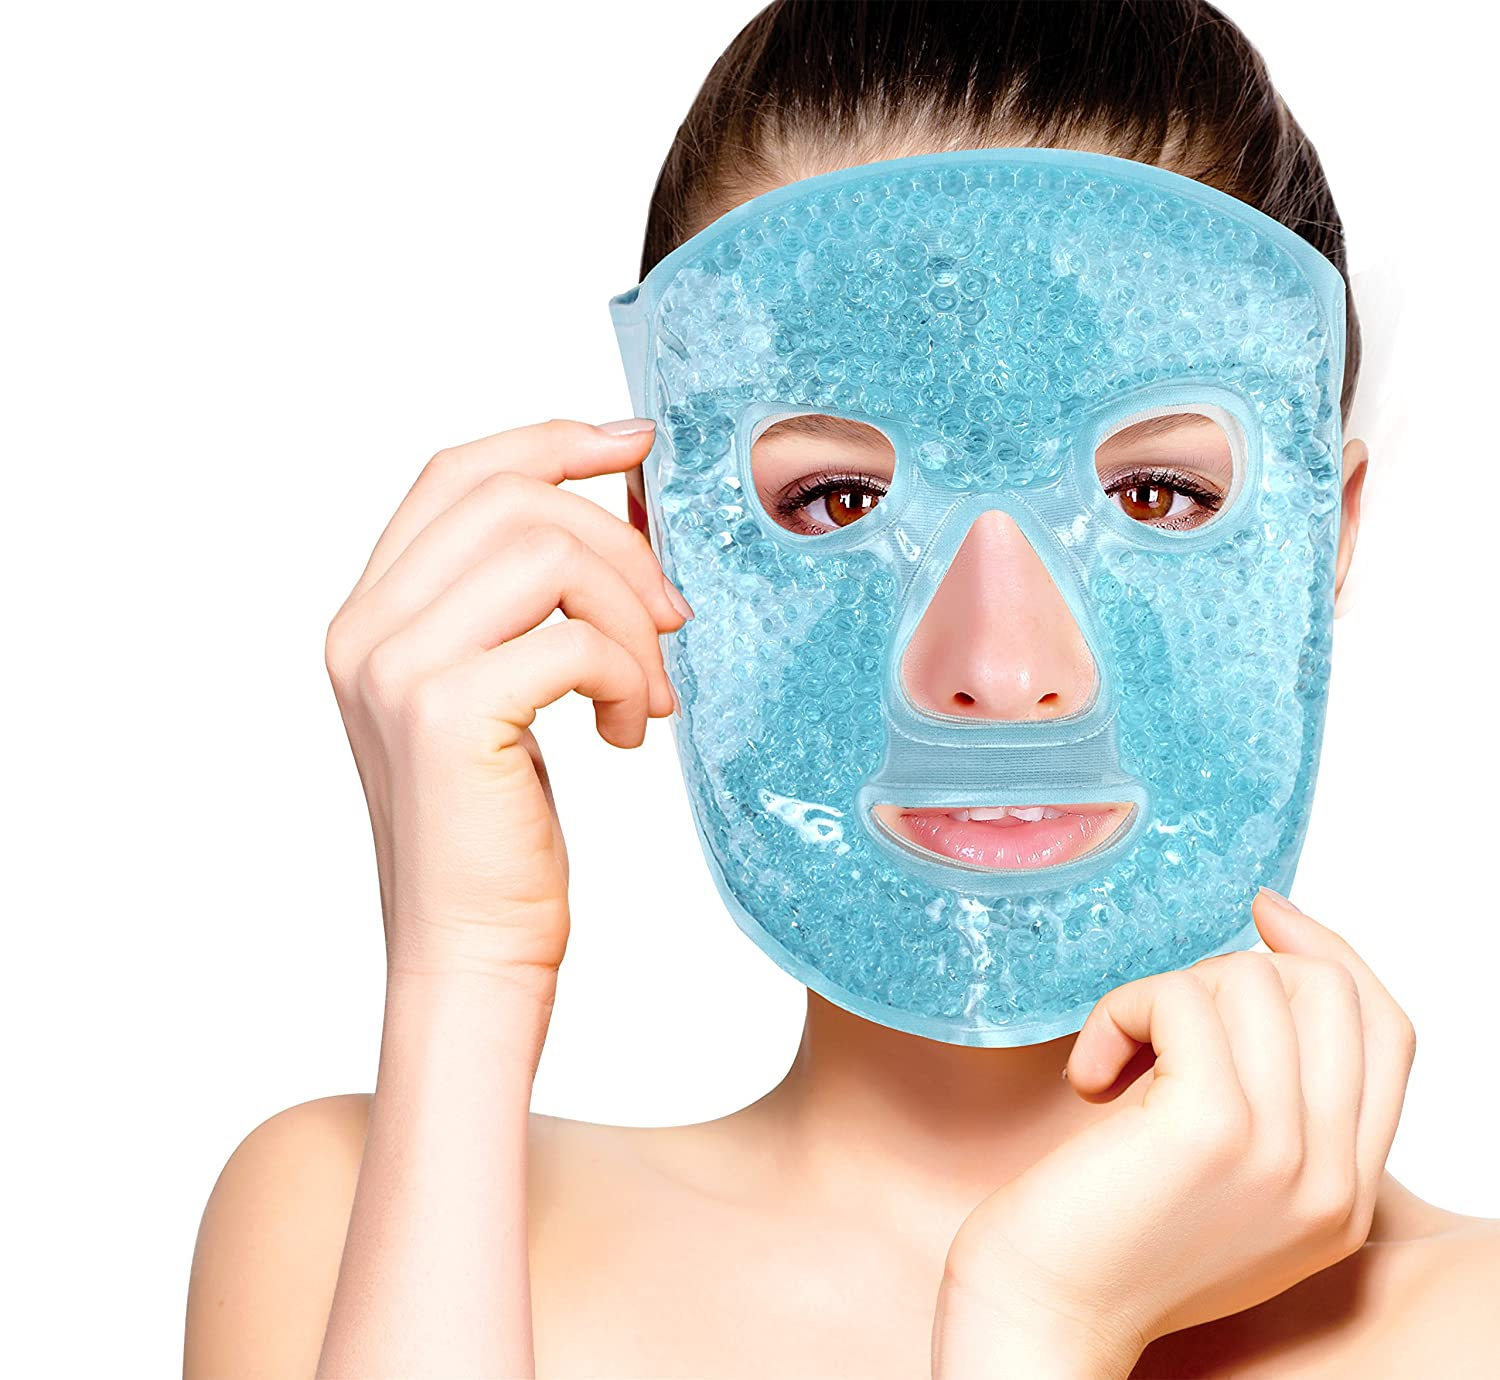 Hot and Cold Therapy Gel Bead Full Facial Mask by FOMI Care | Ice Face Mask for Migraine Headache, Stress Relief | Reduces Eye Puffiness, Dark Circles | Fabric Back (Full Face w/Eye Holes)